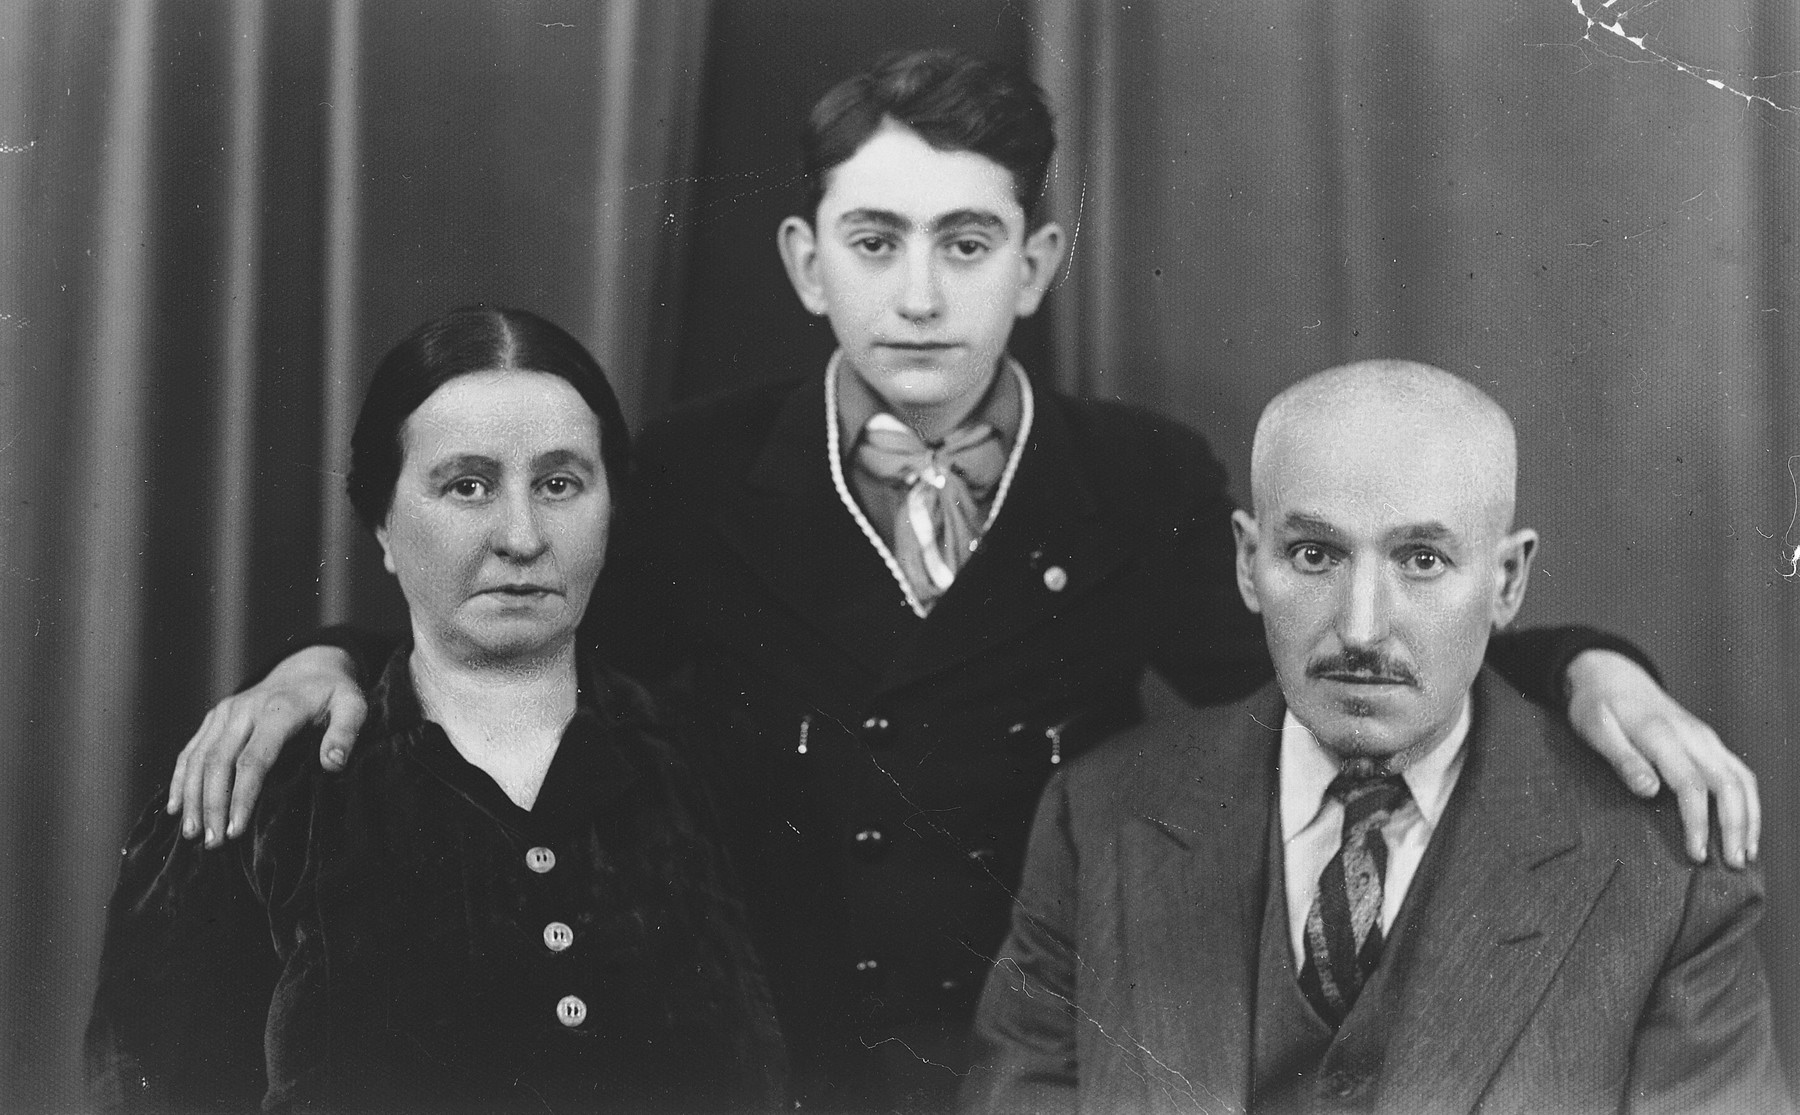 Shmuel Shalkovsky poses between his parents in his Hashomer Hatzair uniform.